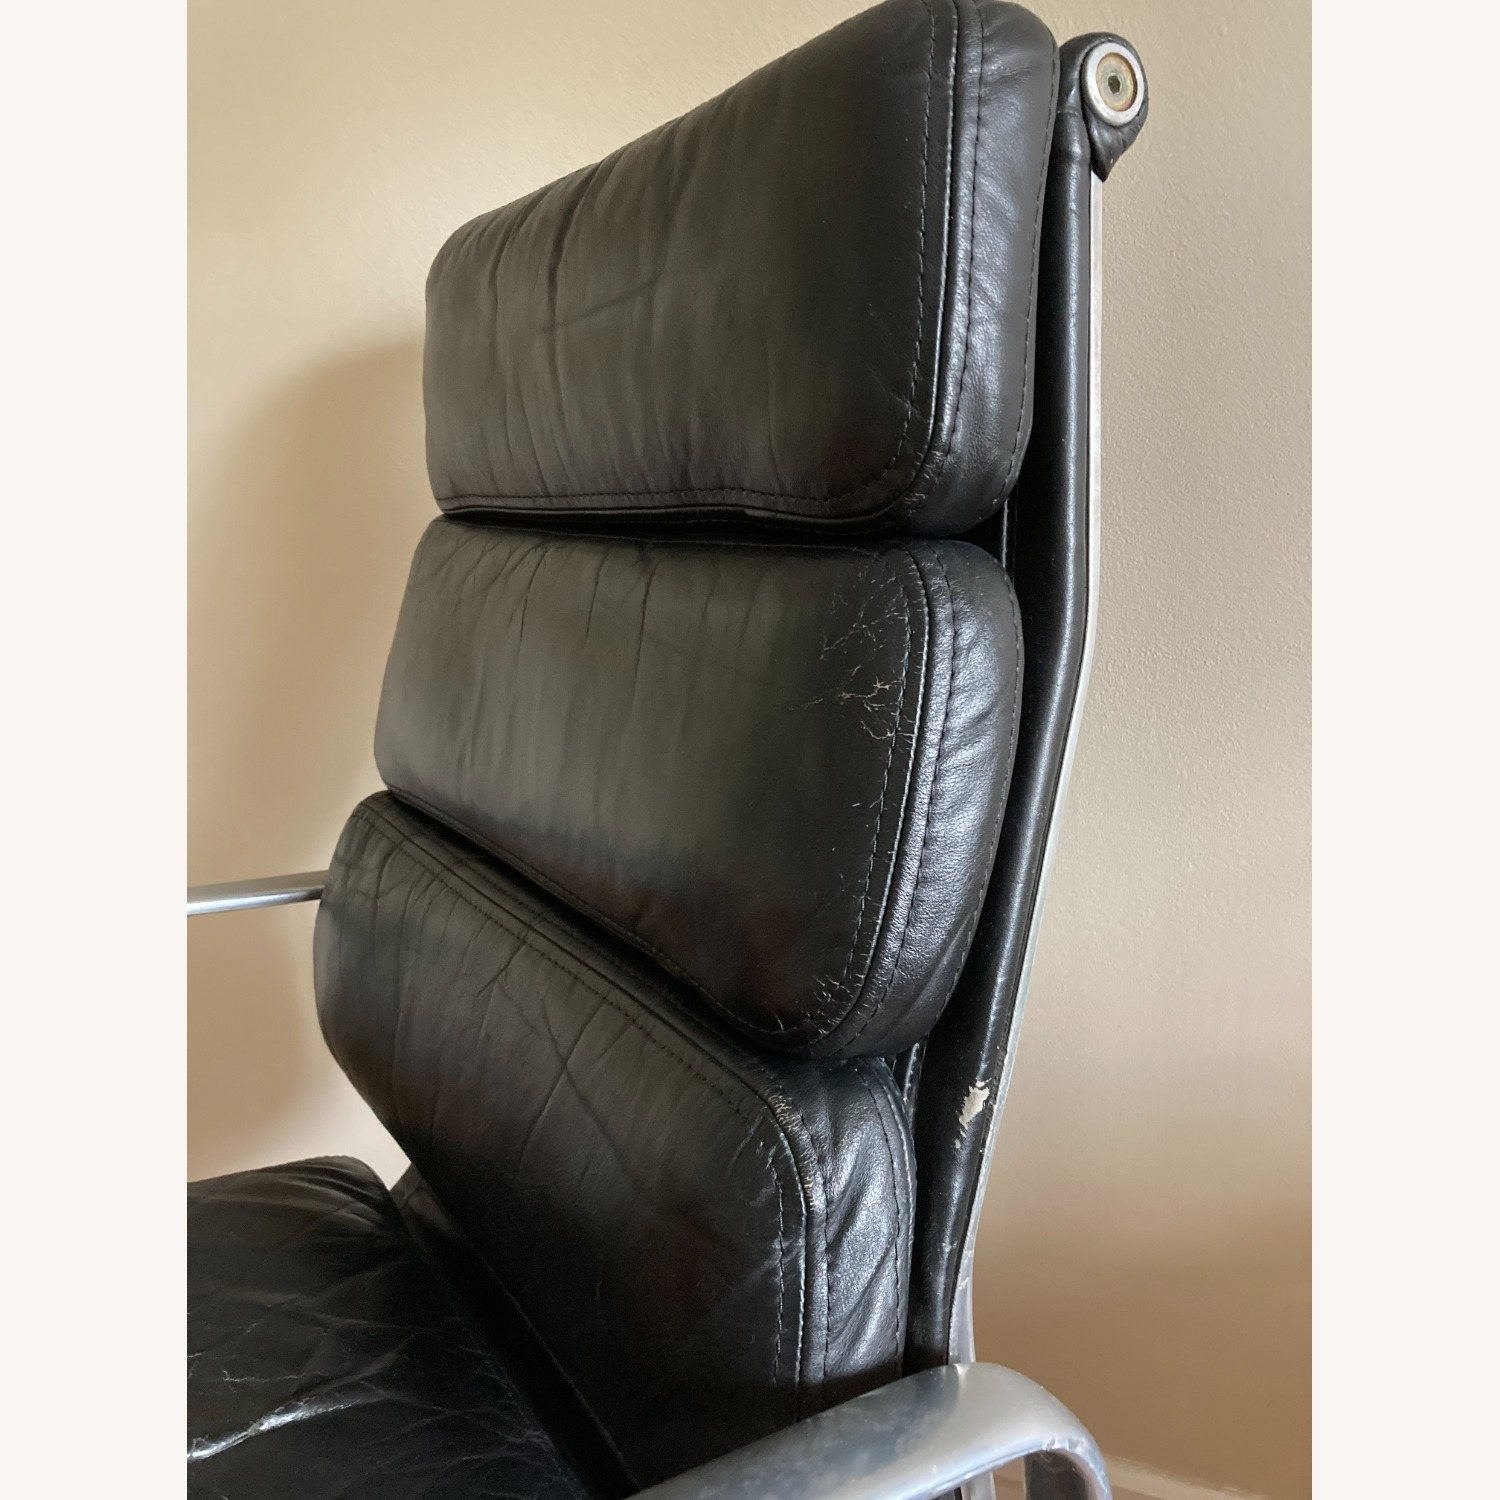 Herman Miller Eames Soft Pad Executive Chair - image-6